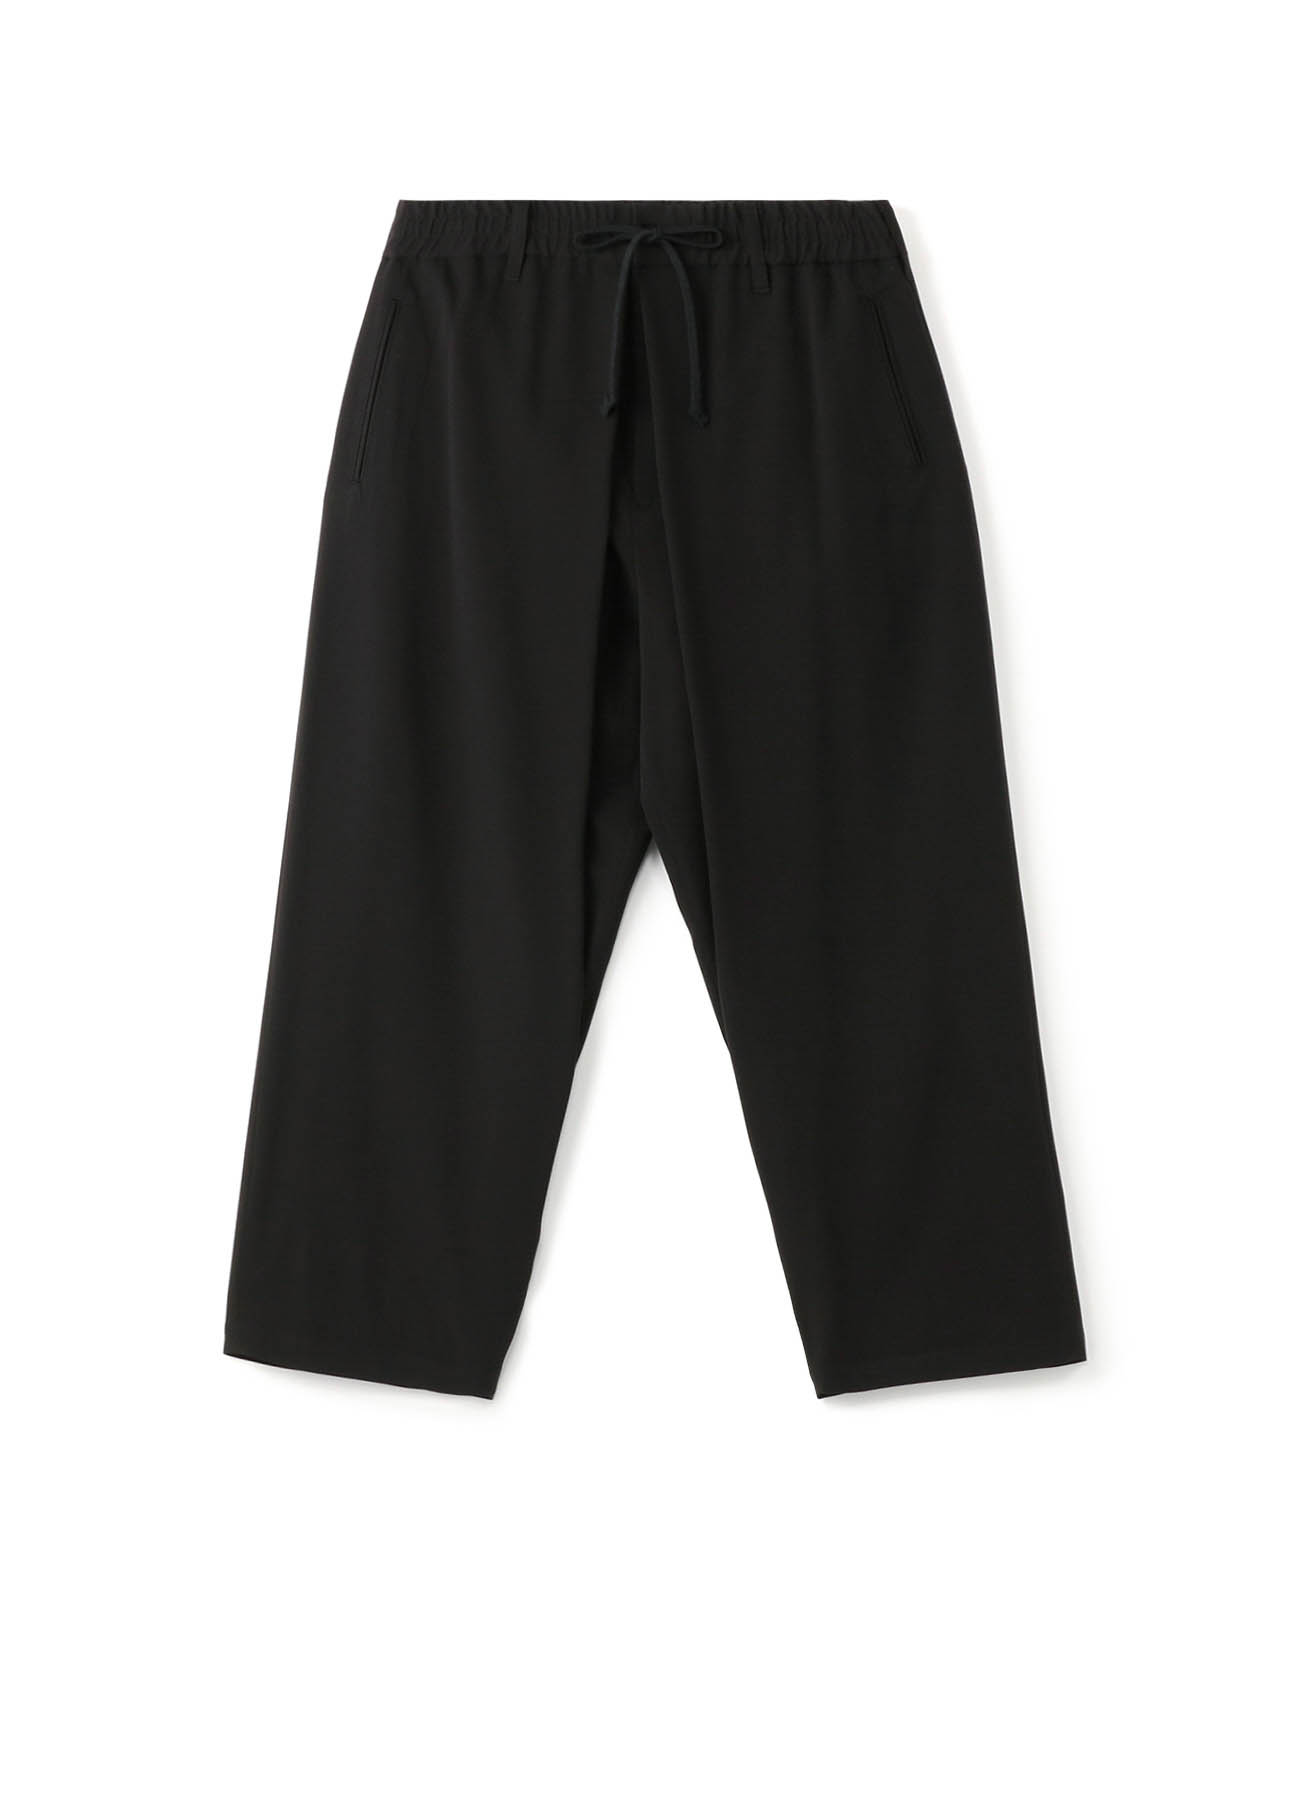 Pe/Rayon Gabardine Center Wide Tack Pants